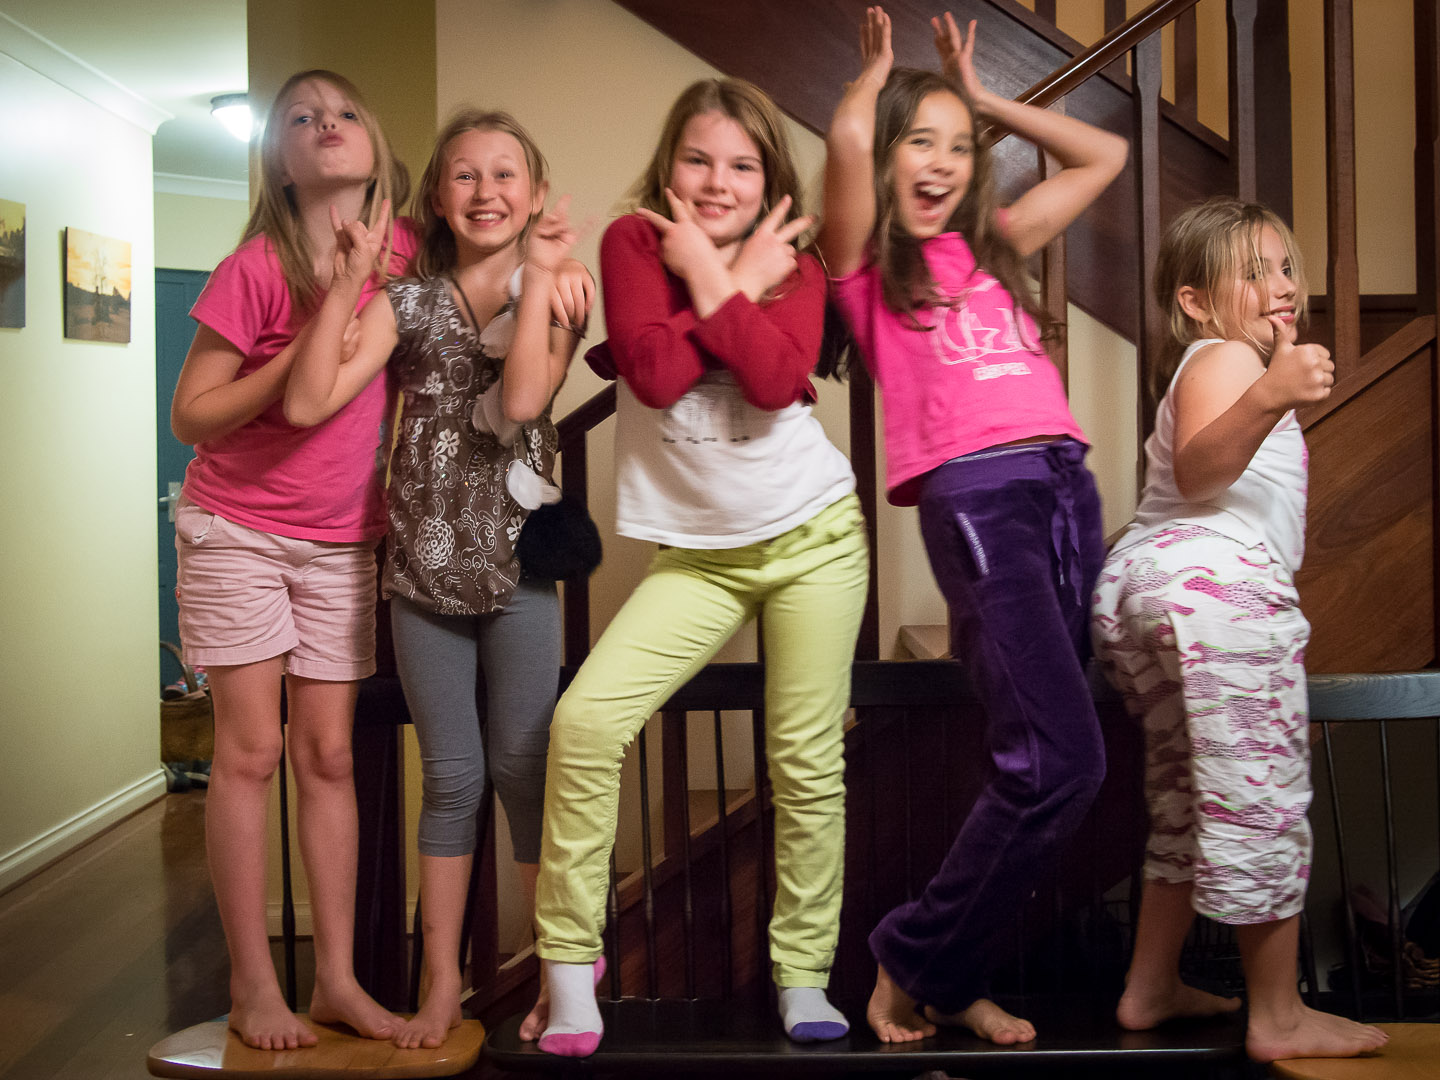 Things To Do In A Sleepover For Girls